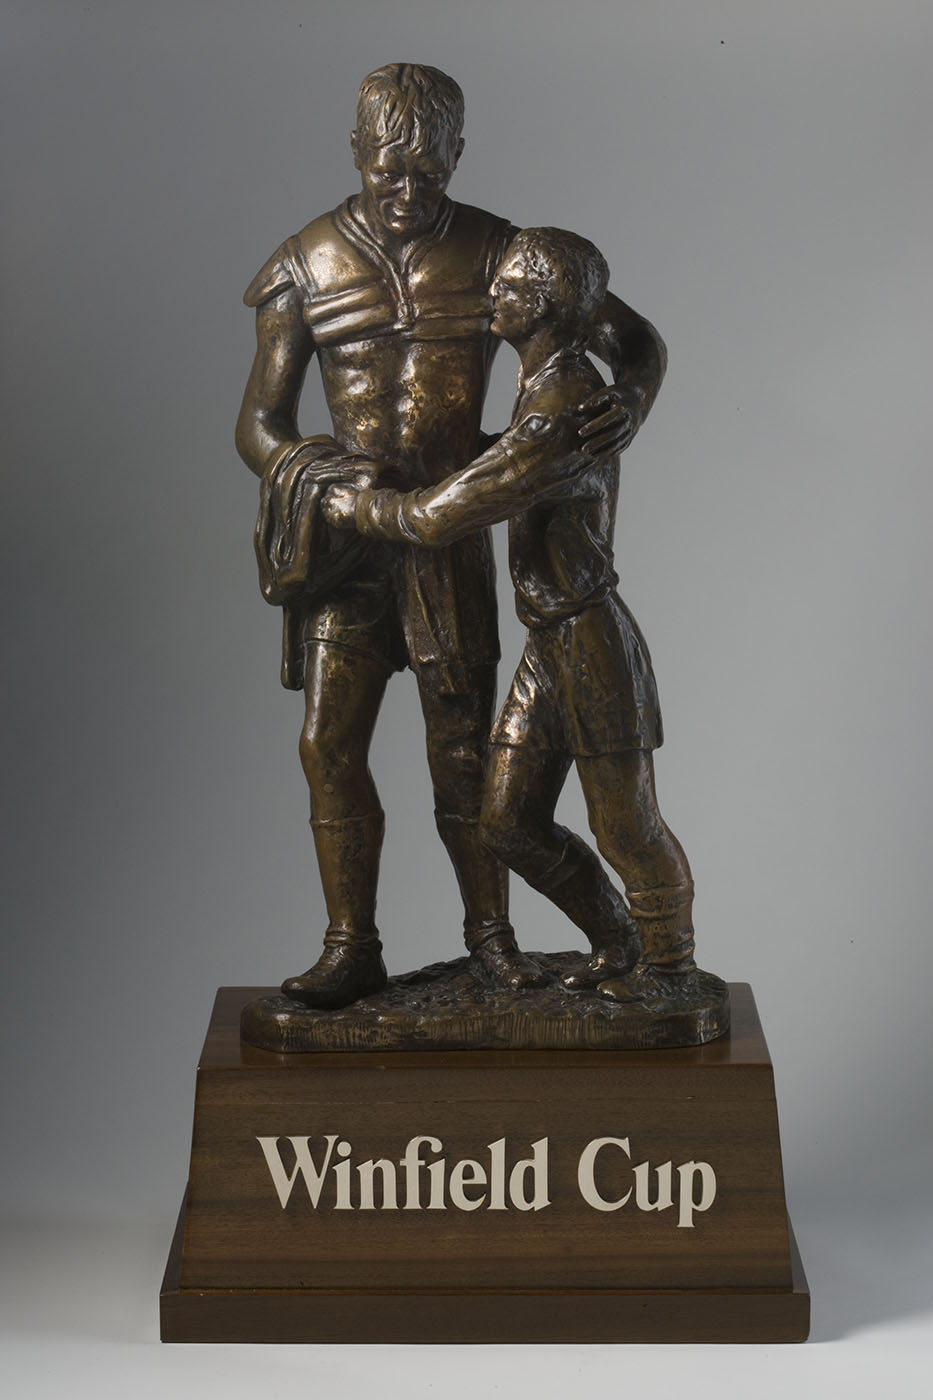 Bronze-coloured trophy with a sculpture of two footballers embracing, atop a base with text: ' Winfield Cup'. - click to view larger image